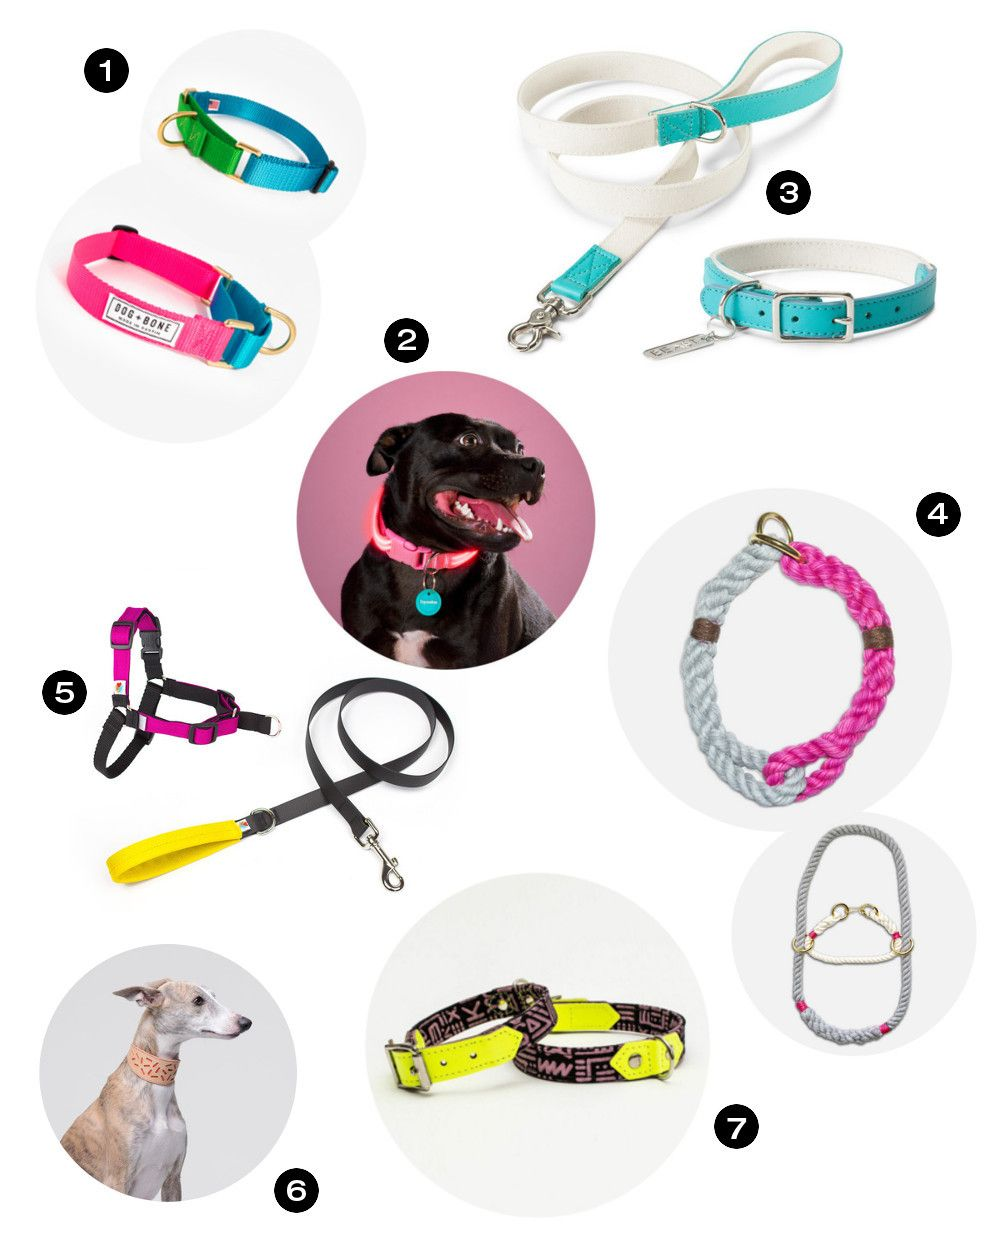 Dog Milk Holiday Gift Guide 24 Stylish Collars Leashes And